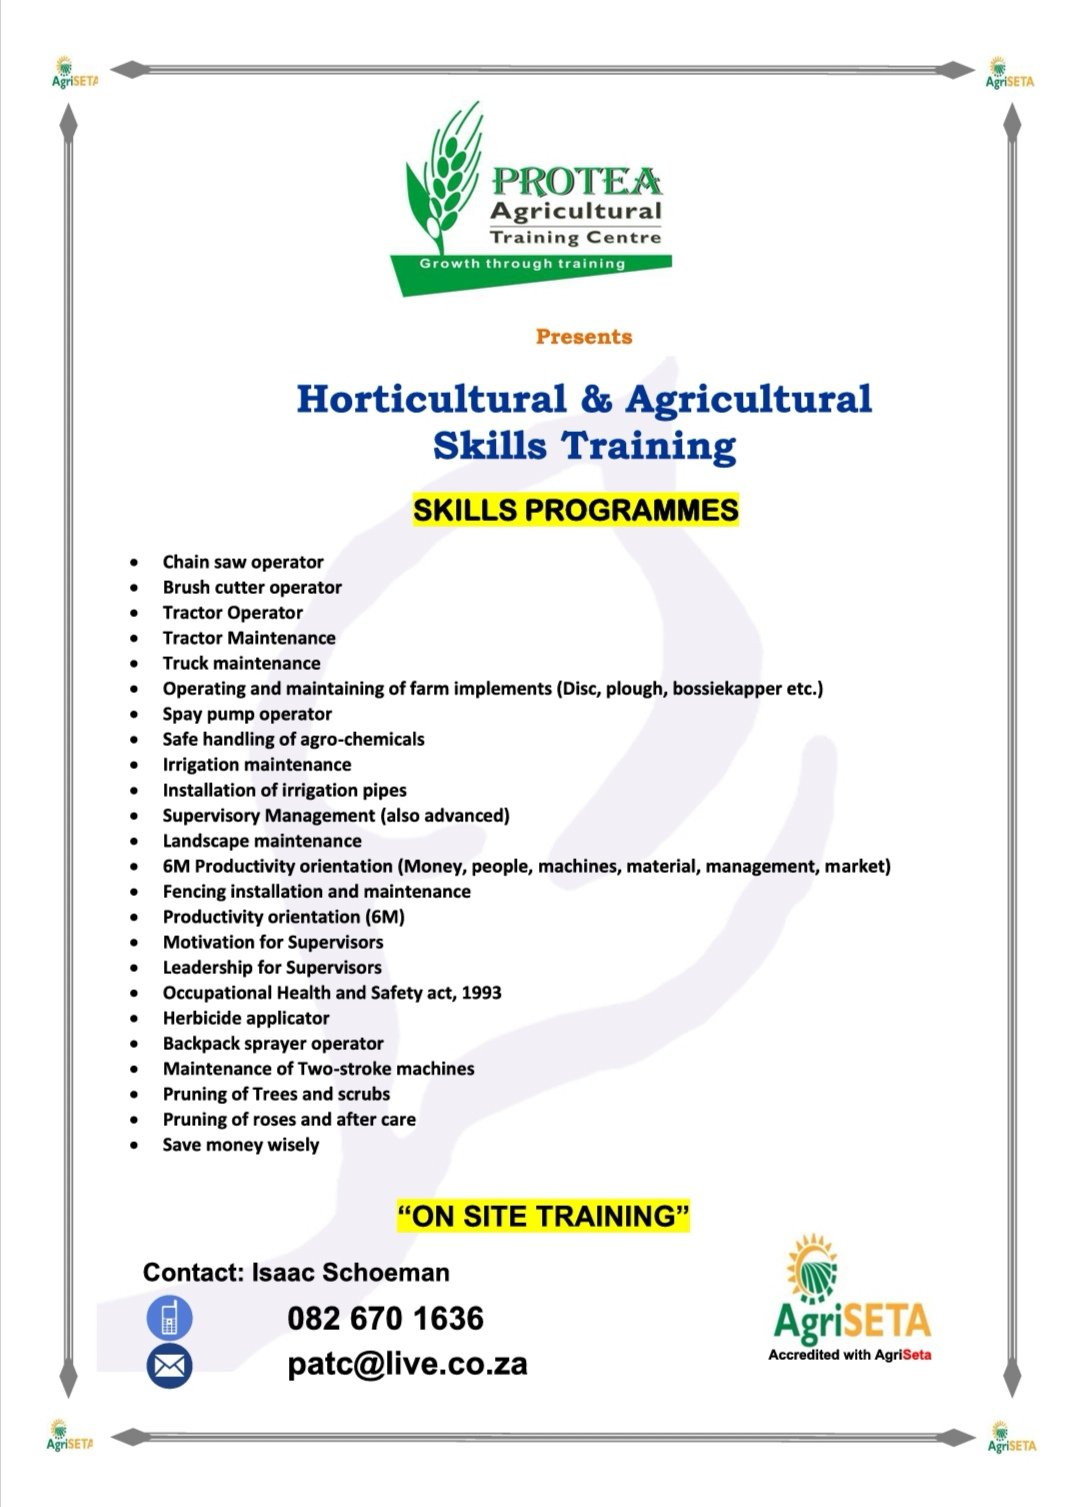 Business Listing for Protea Agricultural Training Centre